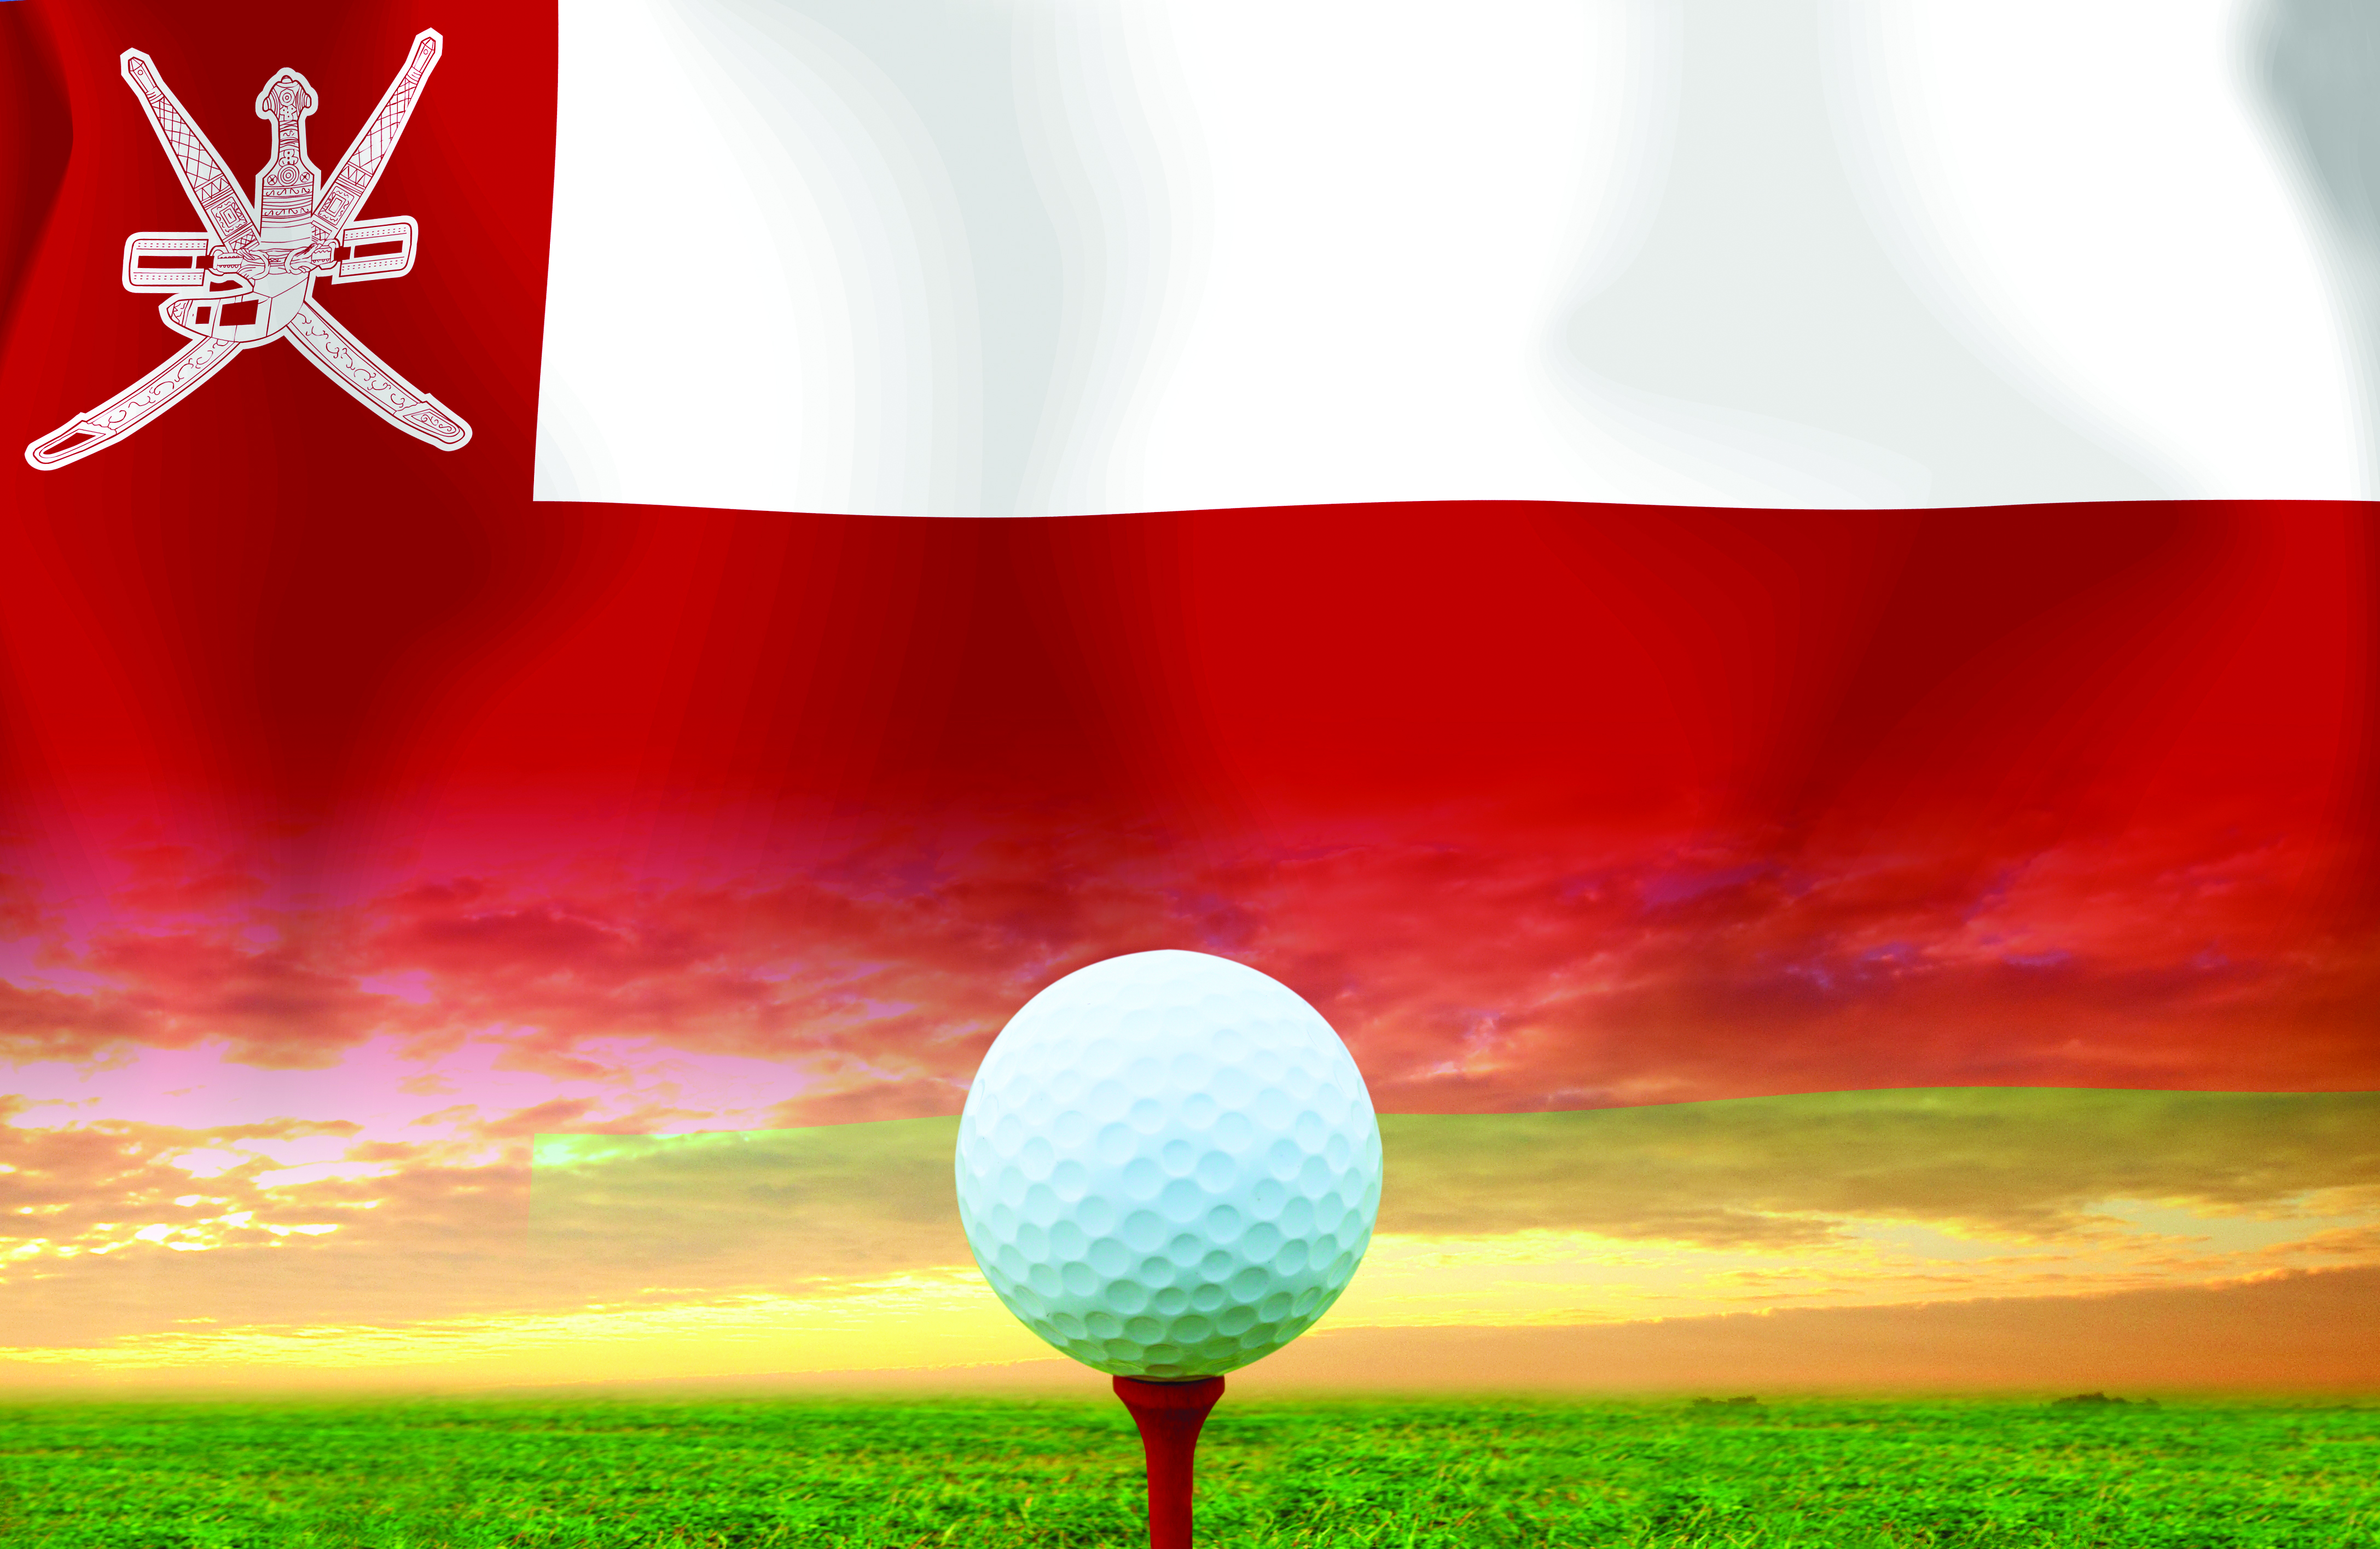 Charity golf to raise OMR14,000 for autism awareness in Oman